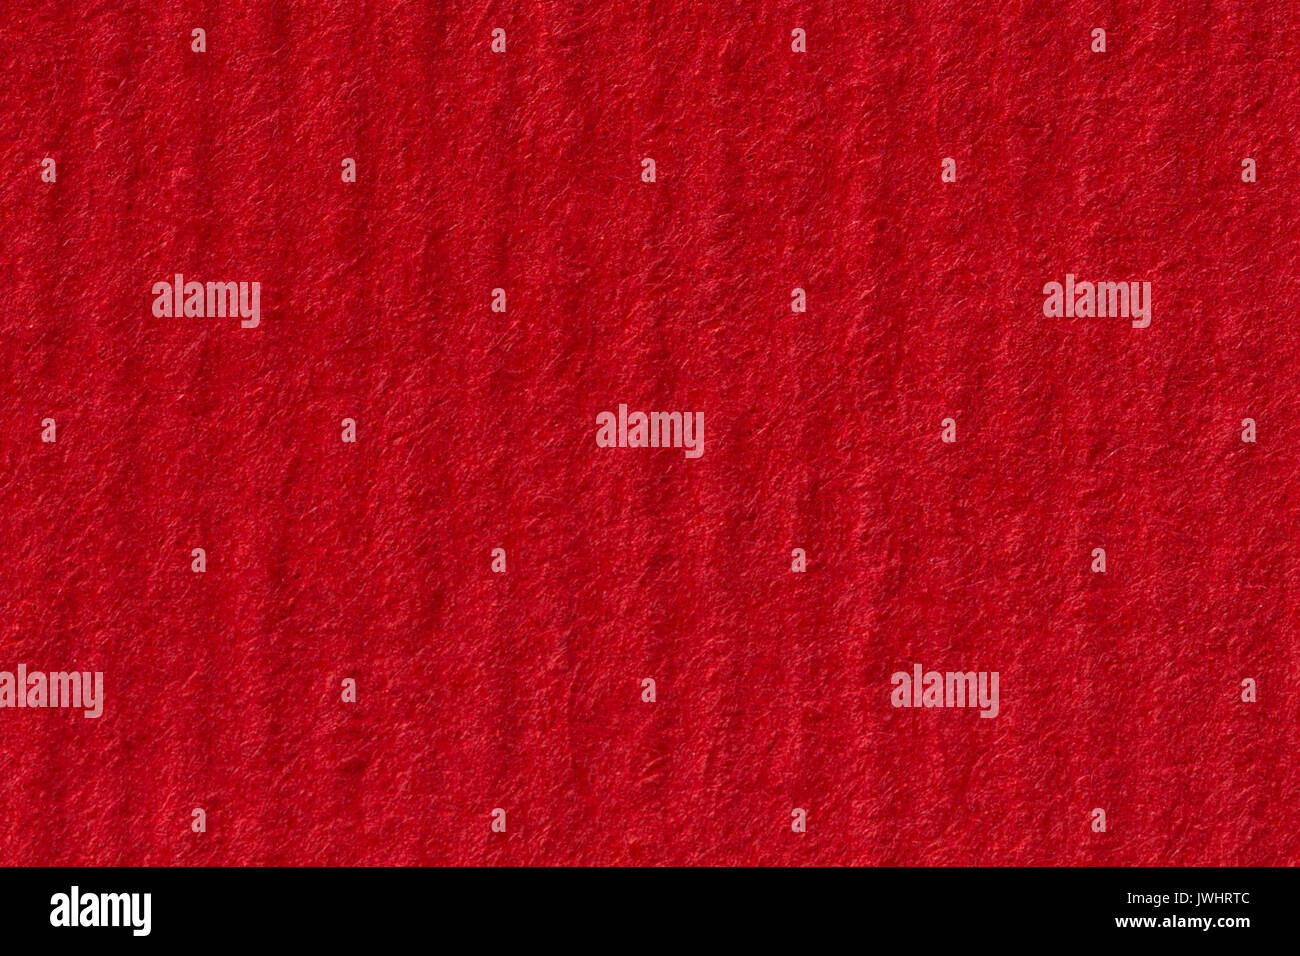 Blank blueprint stock photos blank blueprint stock images alamy blank textured red paper background stock image malvernweather Gallery